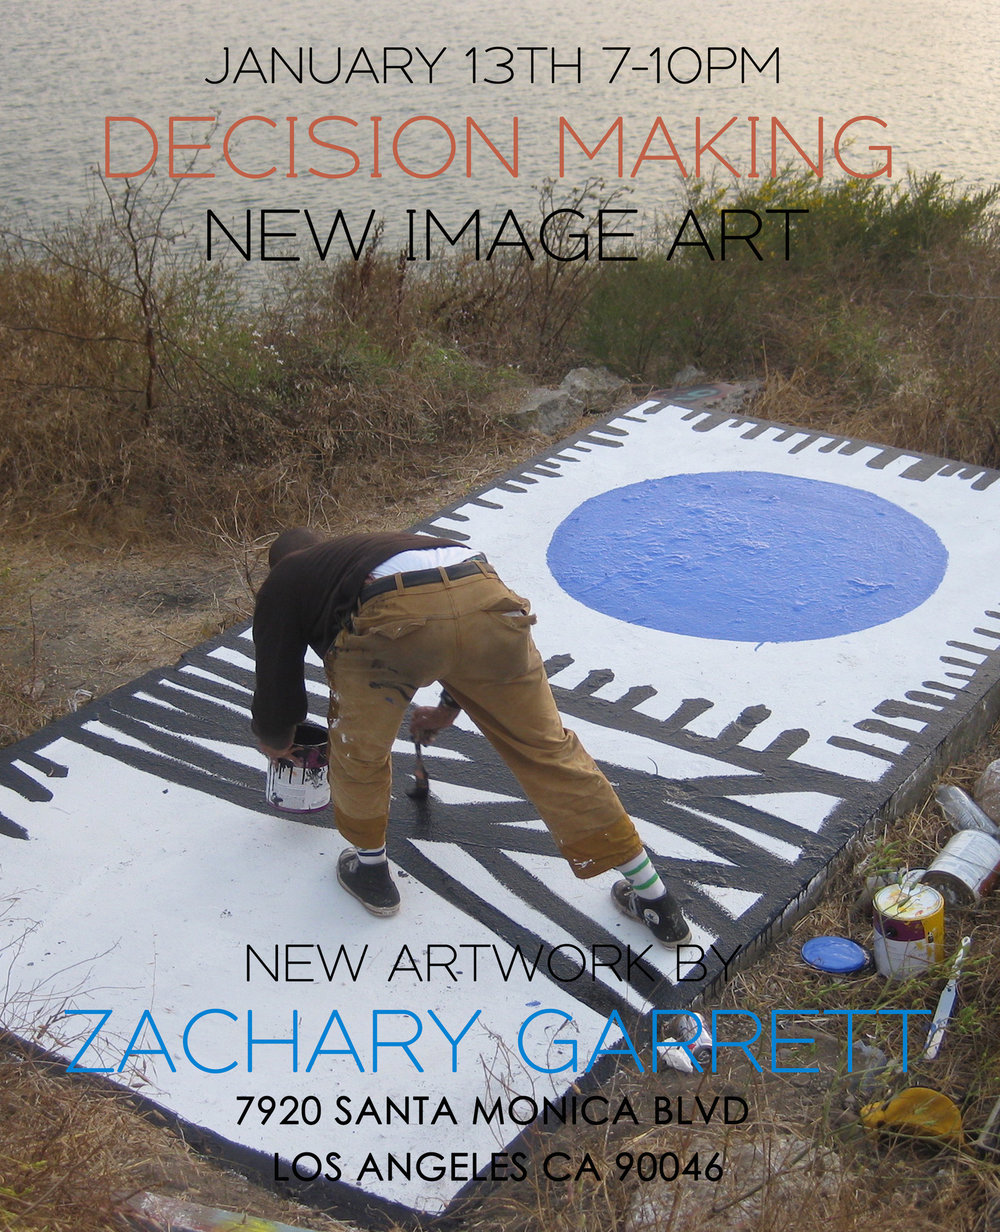 ZACHARY GARRETT - DECISION MAKING